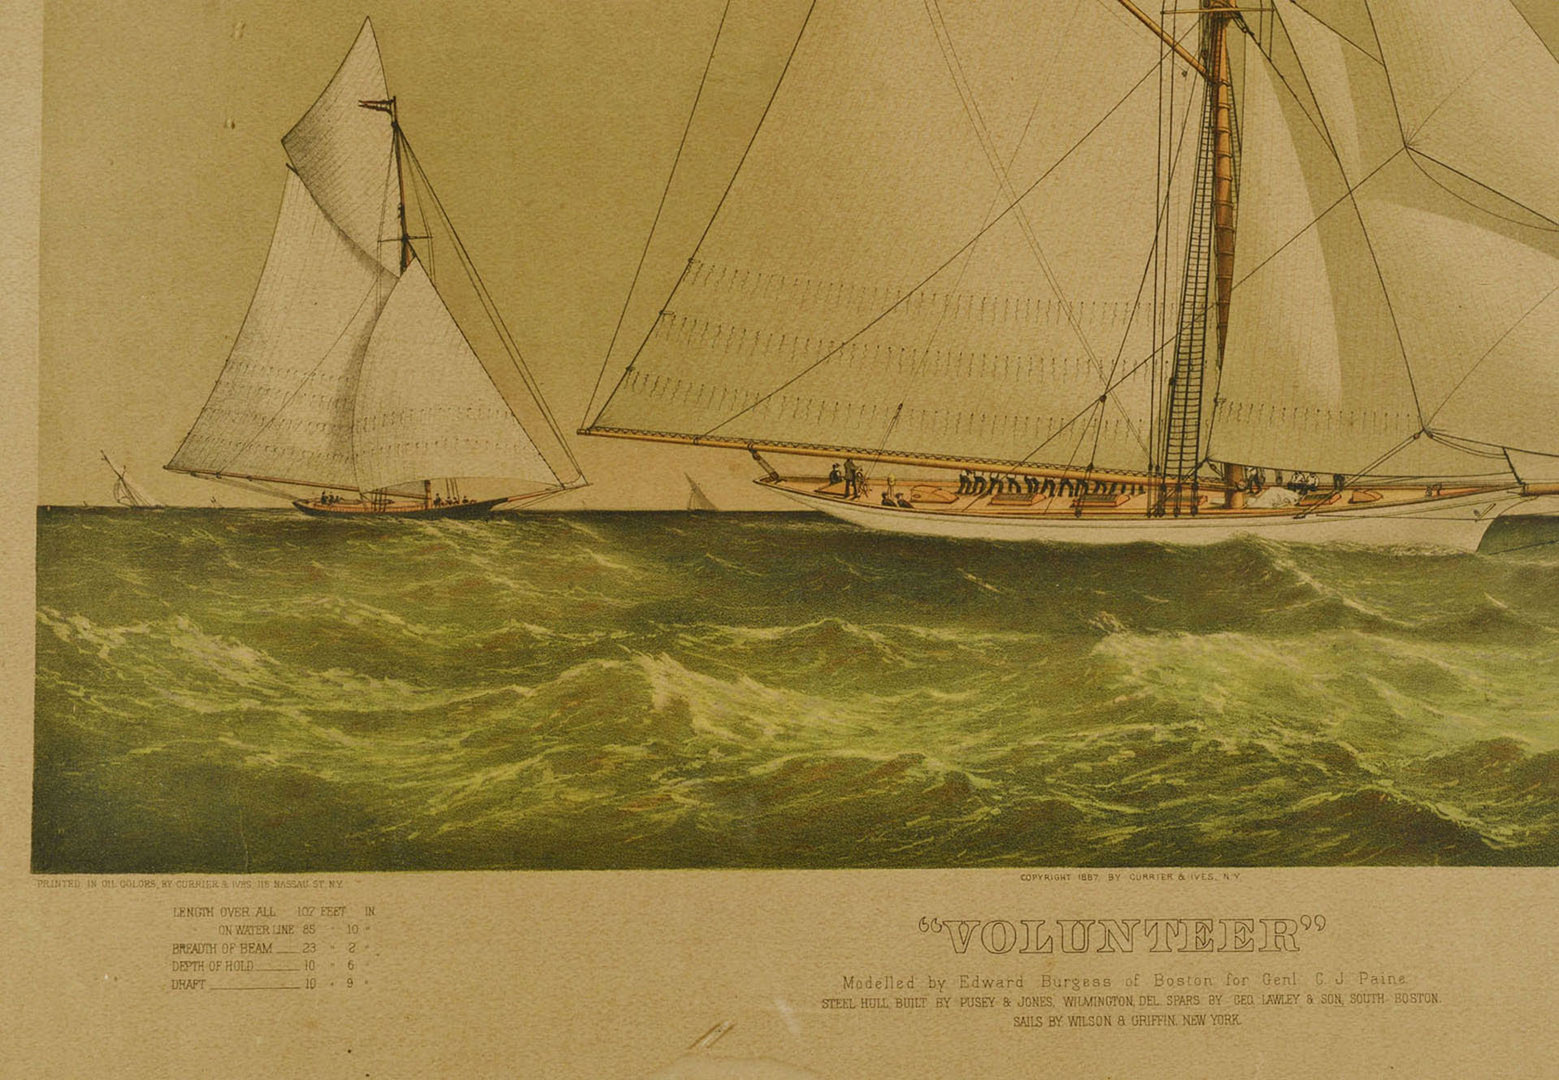 """Lot 345: Currier and Ives lithograph, """"Volunteer"""""""